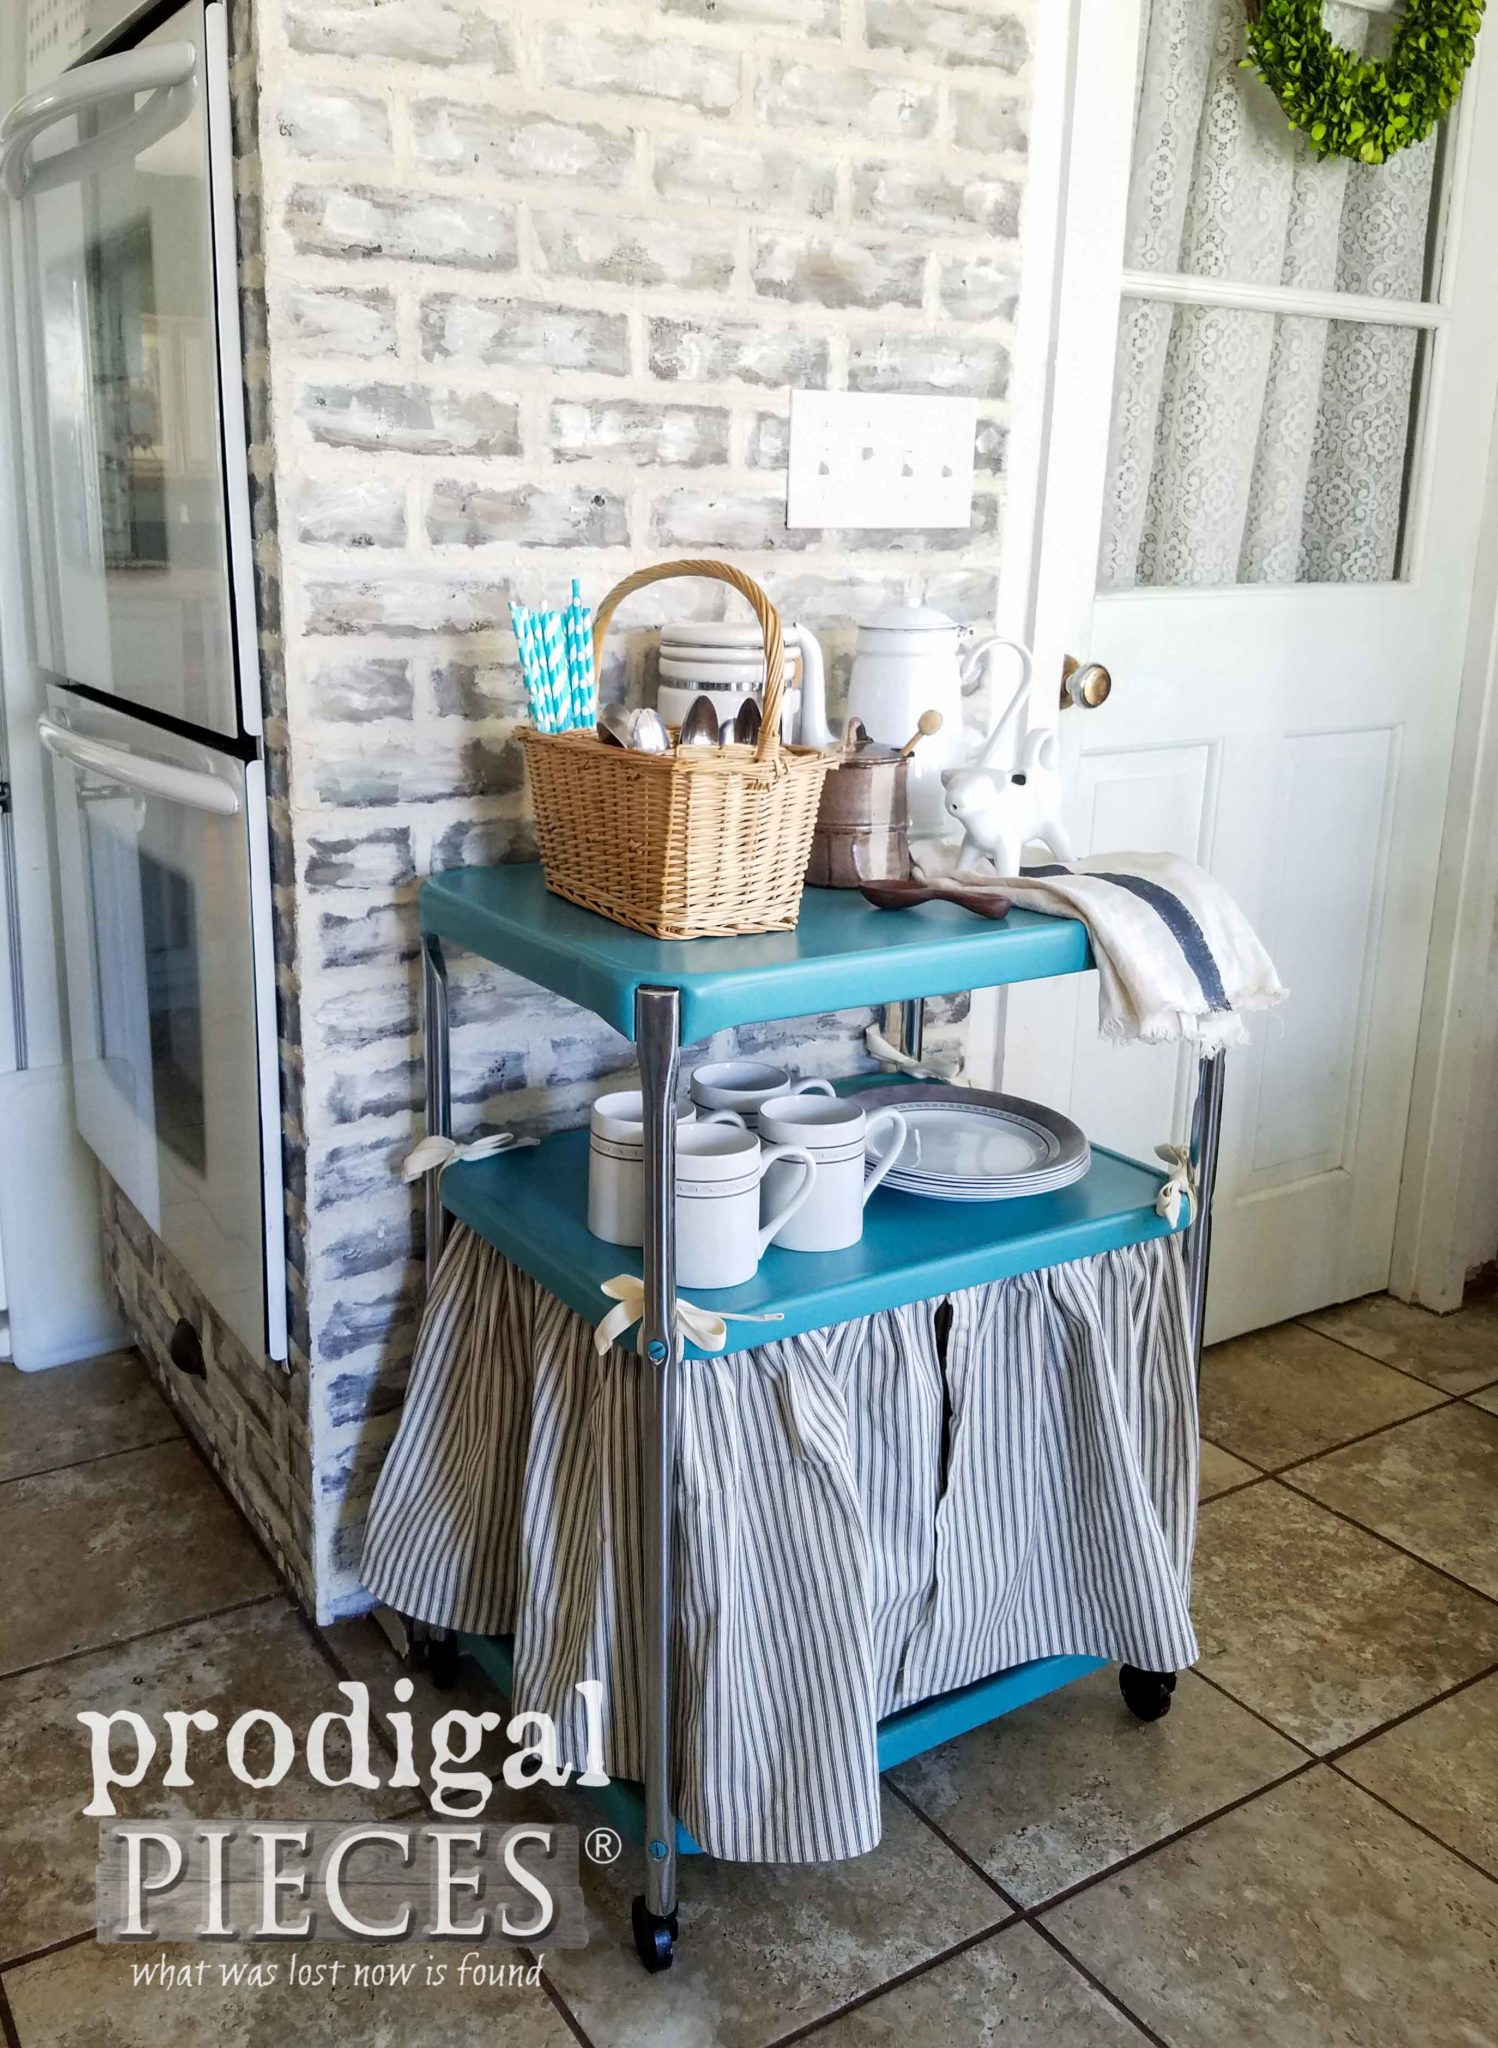 Adorable Vintage Cosco Cart with Dust Ruffle and Storage Baskets for Kitchen, Bathroom, Laundry, Crafts, and Bedroom. Available at Prodigal Pieces | prodigalpieces.com